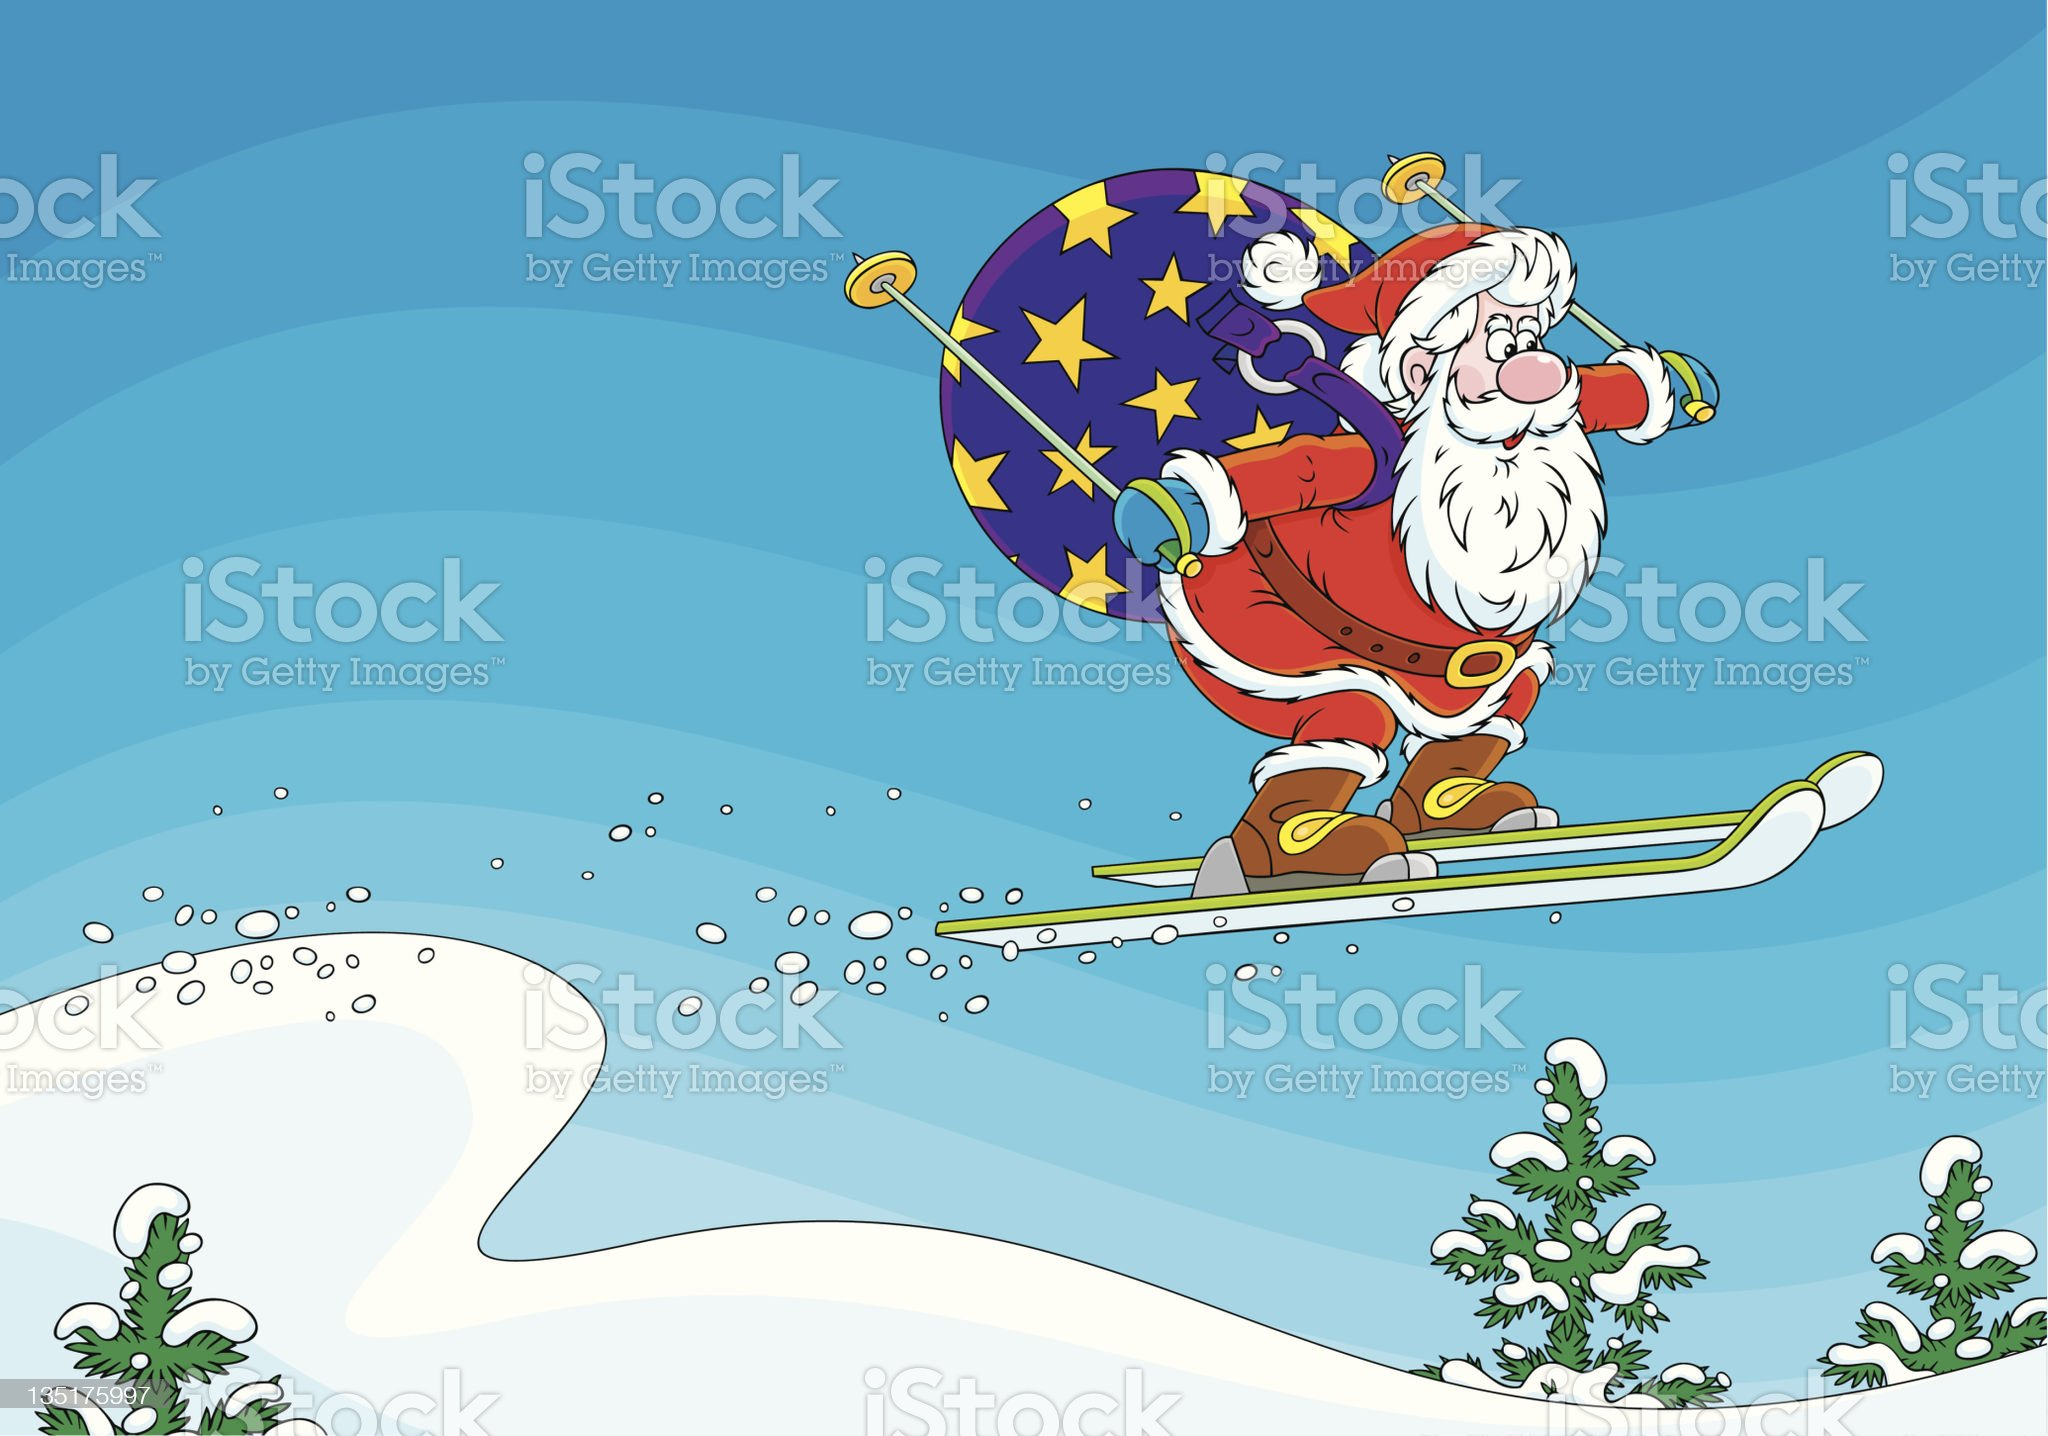 Santa Claus ski jumper royalty-free stock vector art